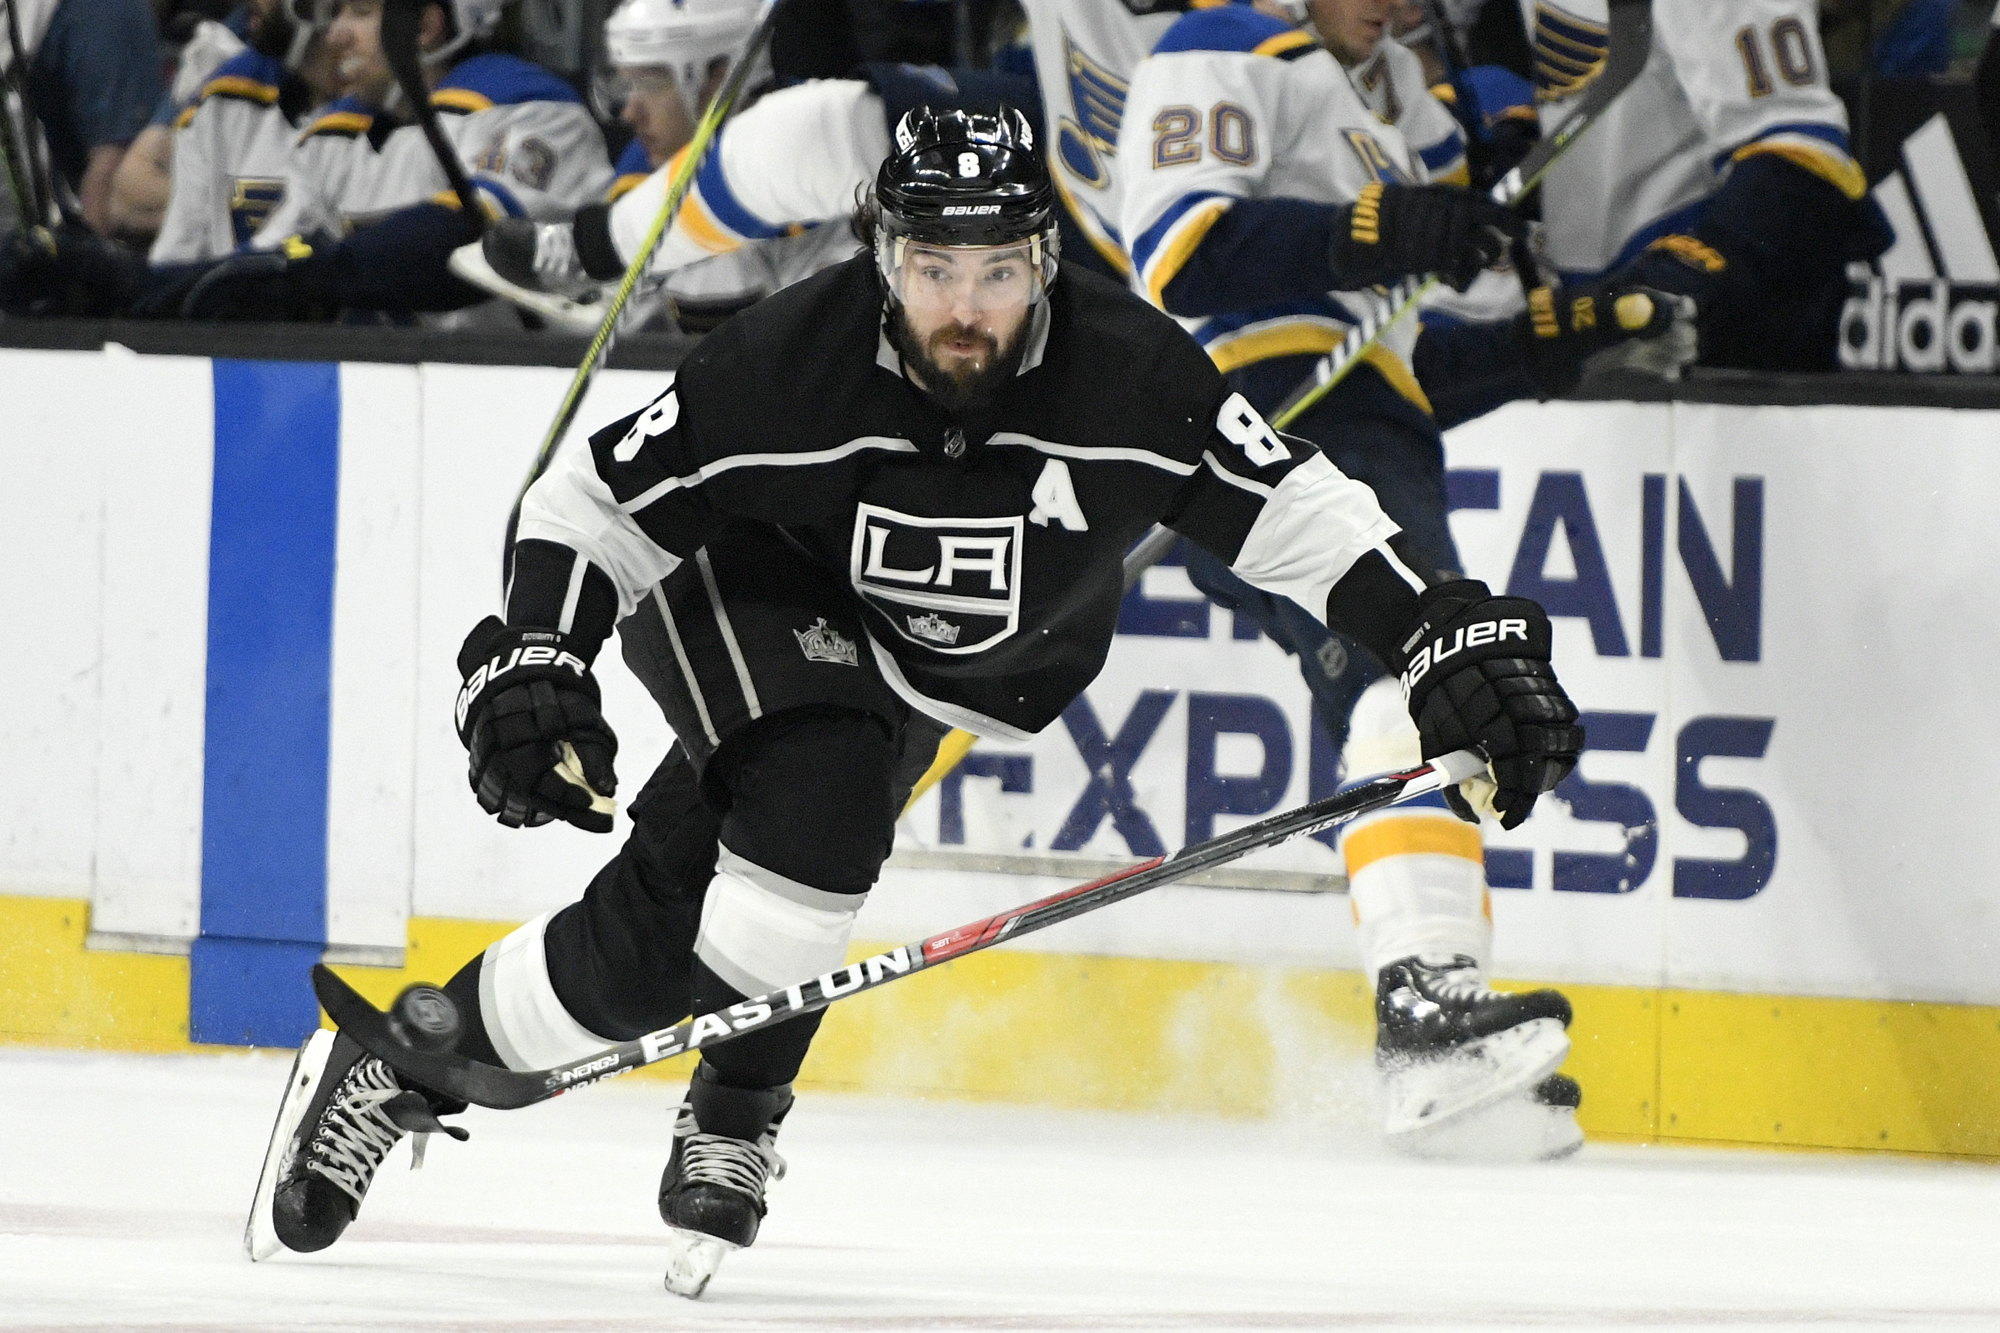 Duchesne High School Ice Hockey Kings Drew Doughty Takes Pride In Consecutive Games Streak